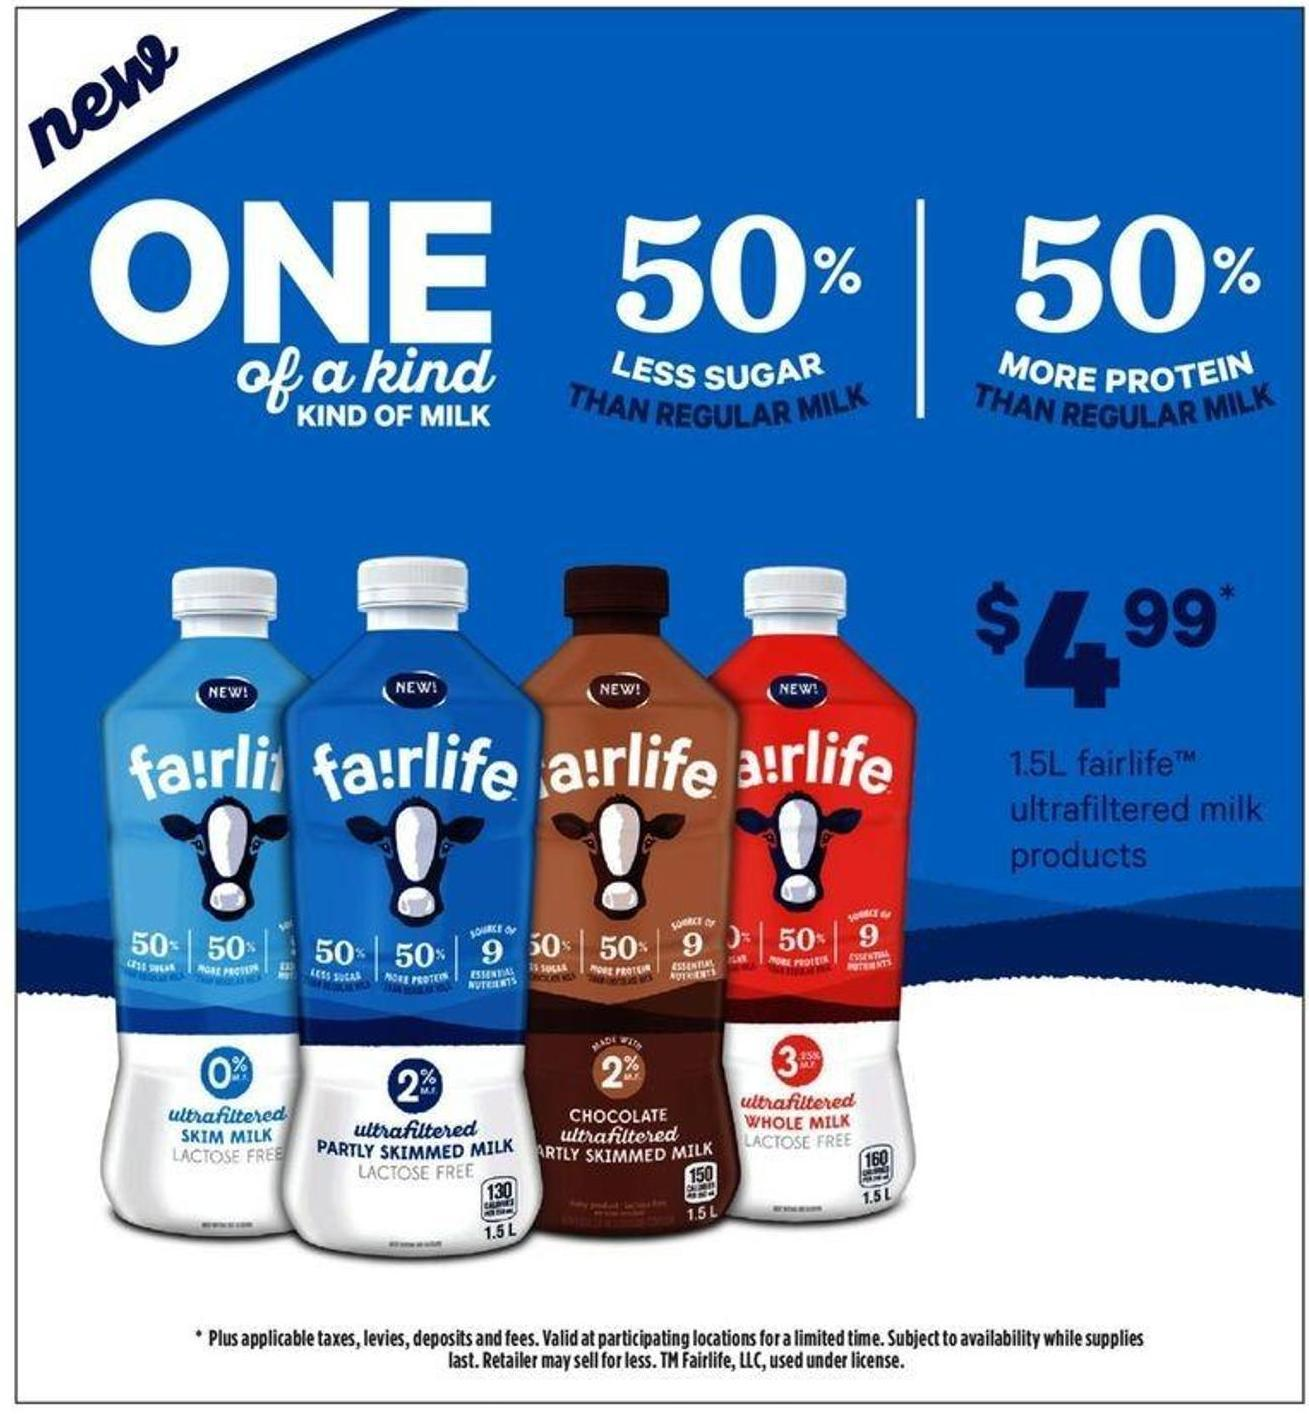 1.5l Fairlife Ultrafiltered Milk Products